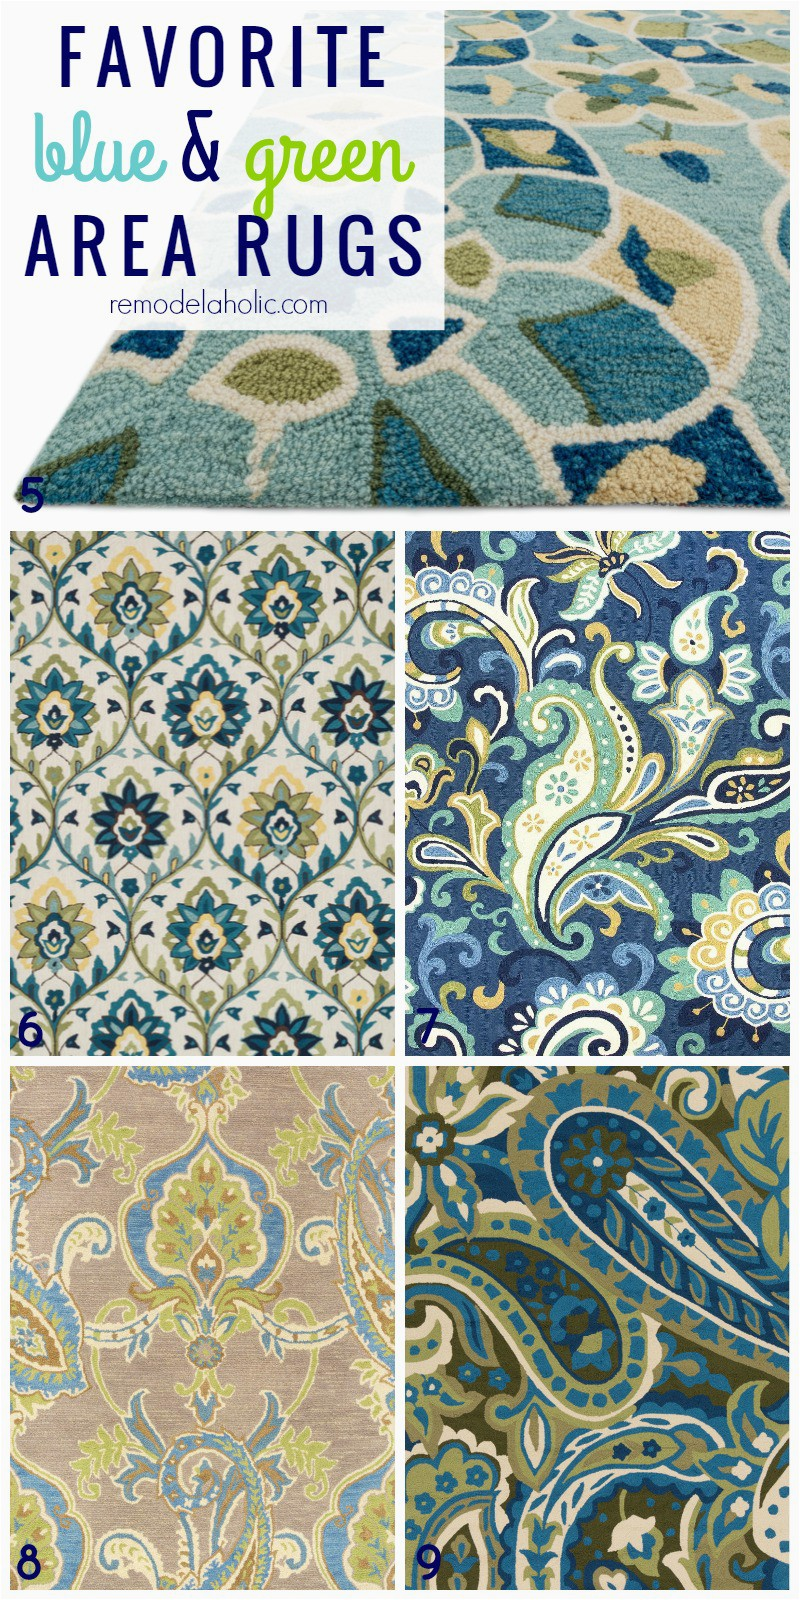 Favorite rugs blue and green 5 9